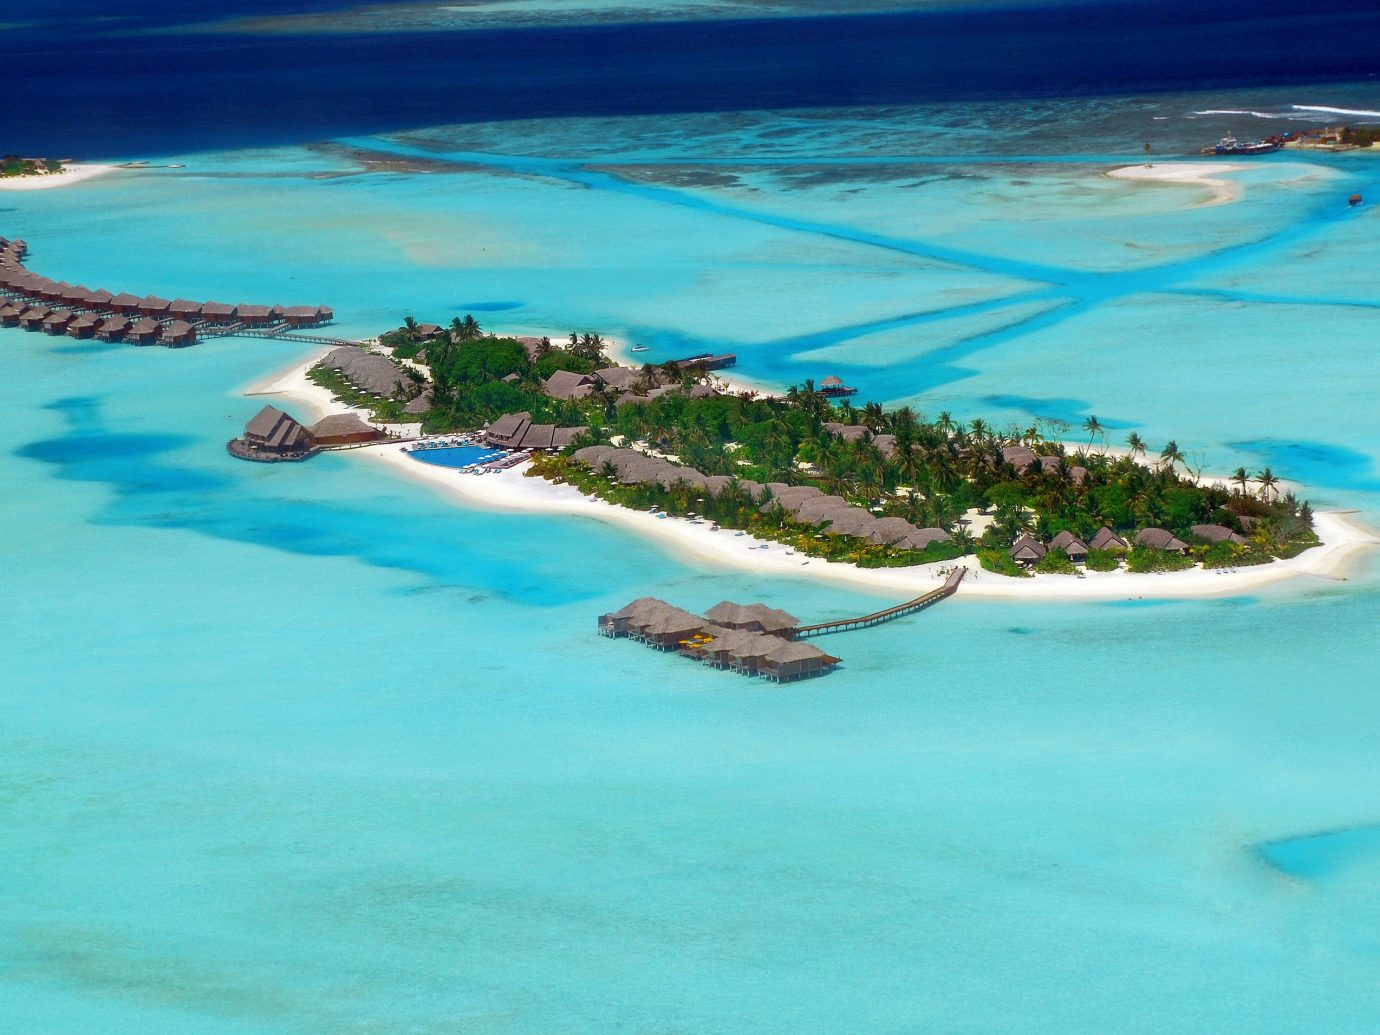 Aerial view of Anantara Dhigu Maldives Resort